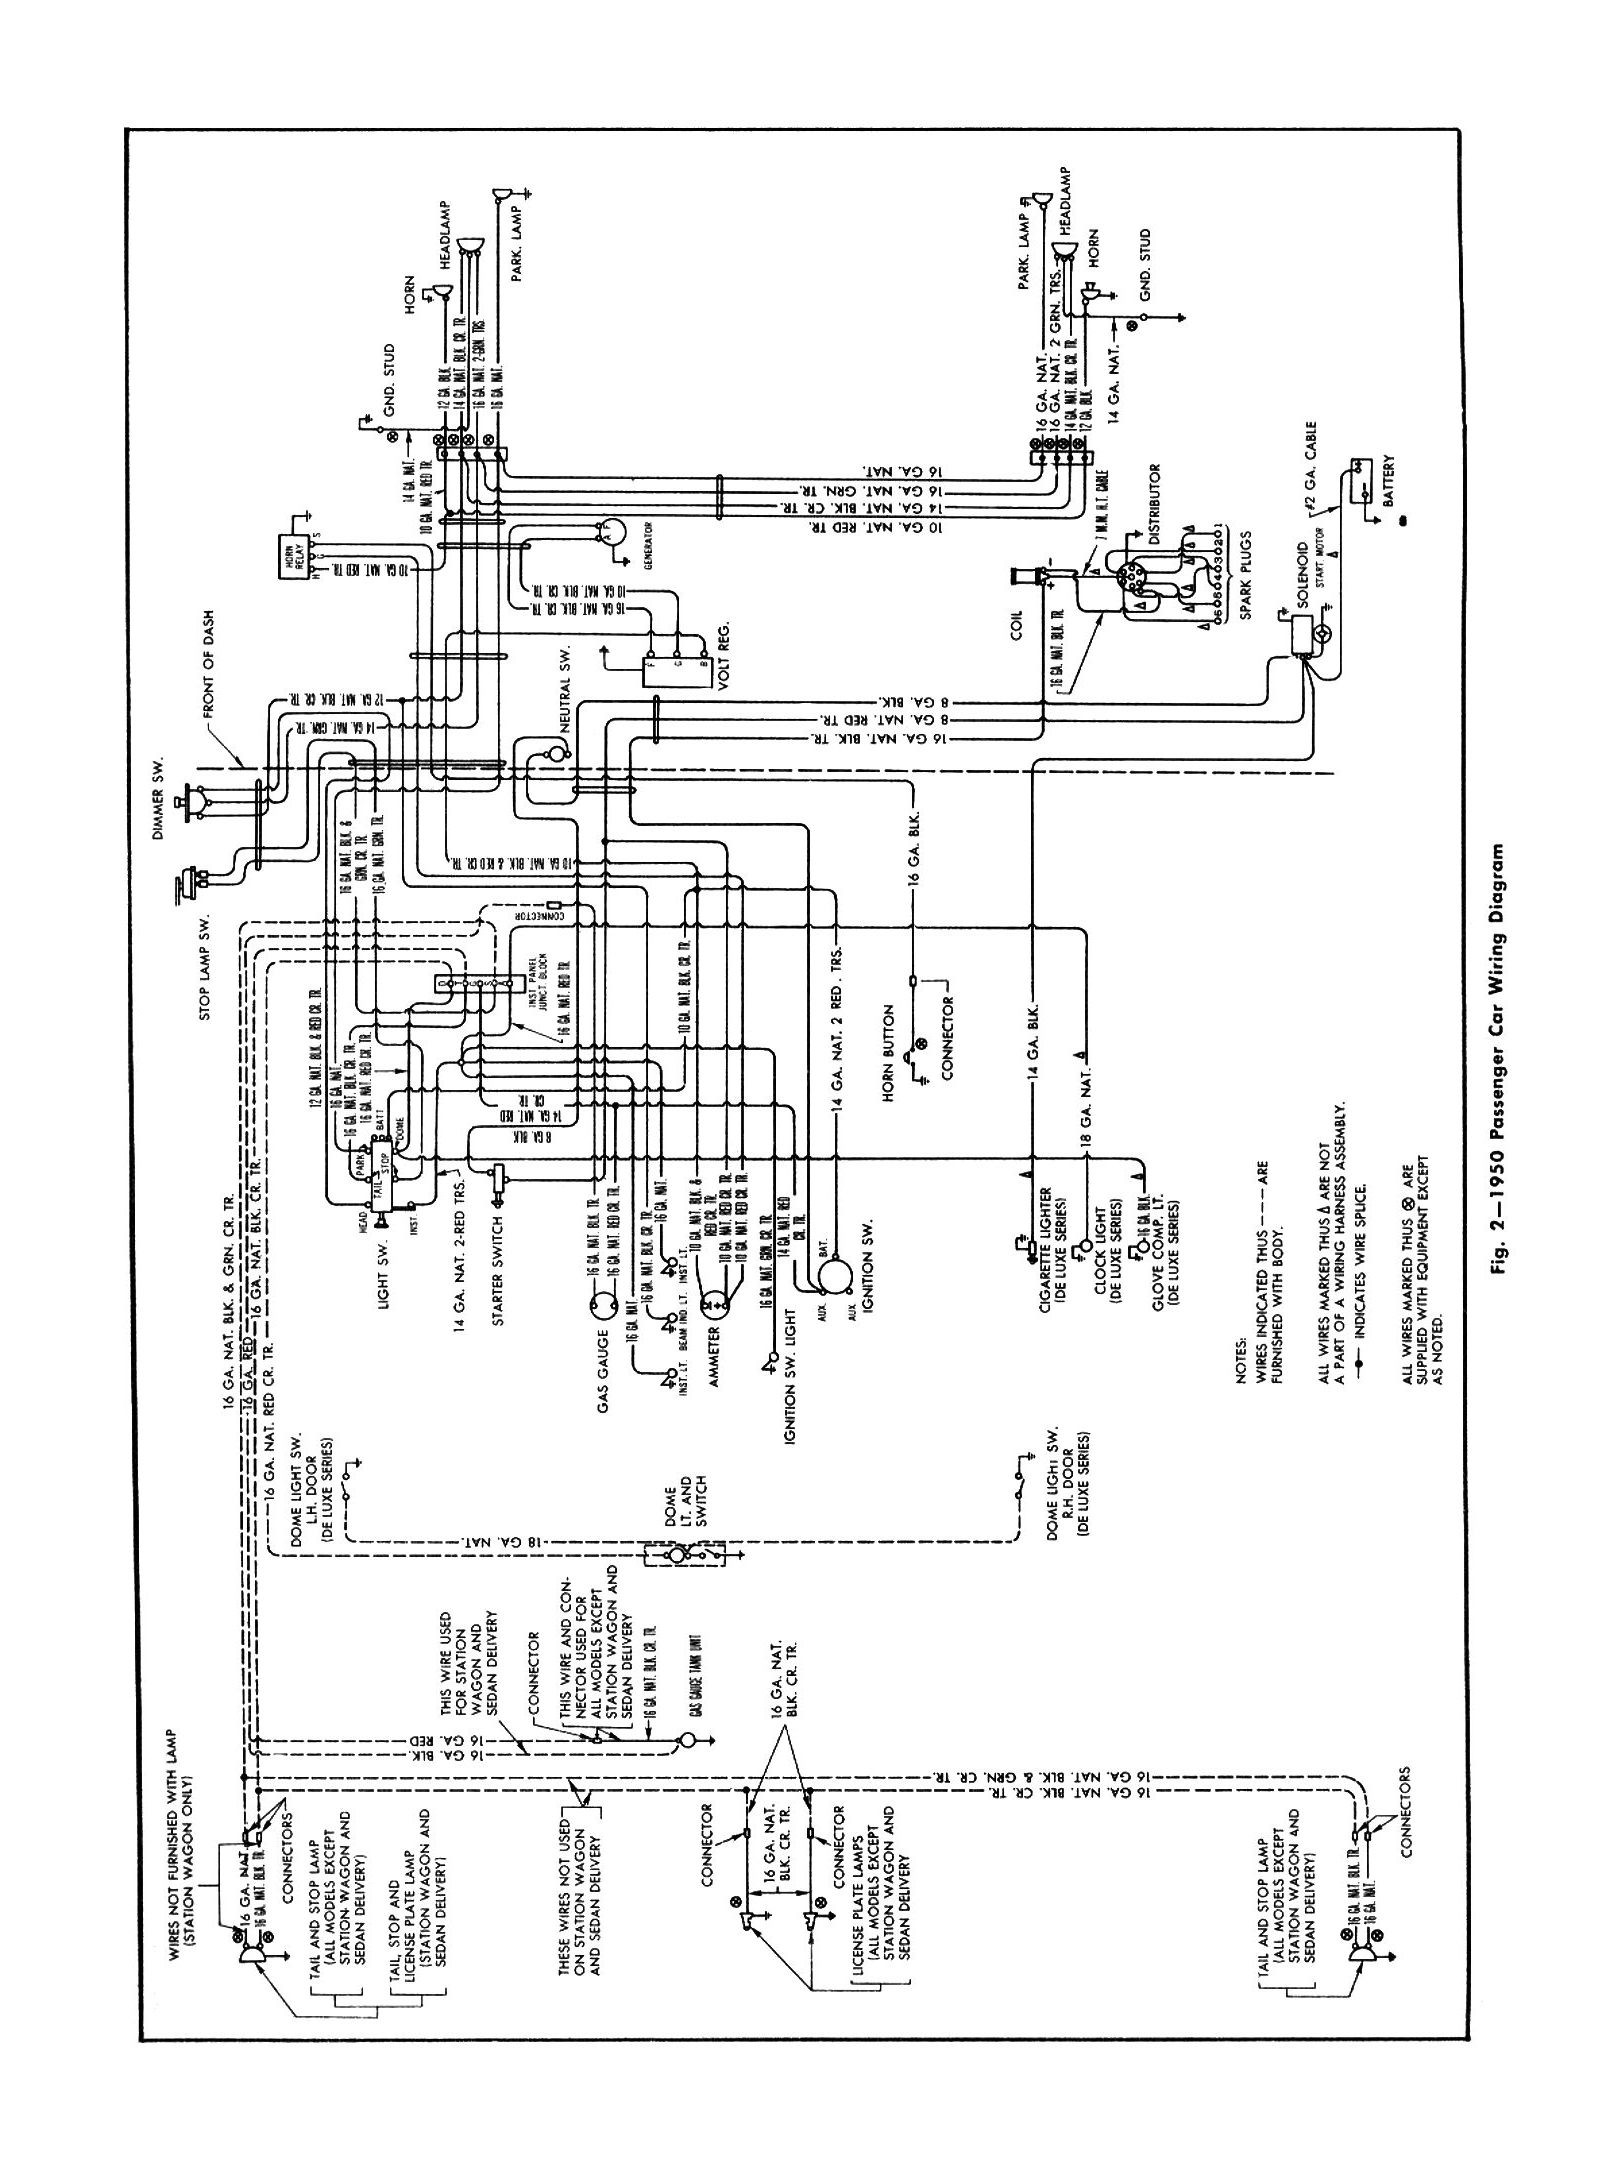 235 chevy wiring hot data wiring diagram update rh 17 hgnbv petersen guitars de 1956 chevy 235 engine diagram 235 chevy engine wiring diagram